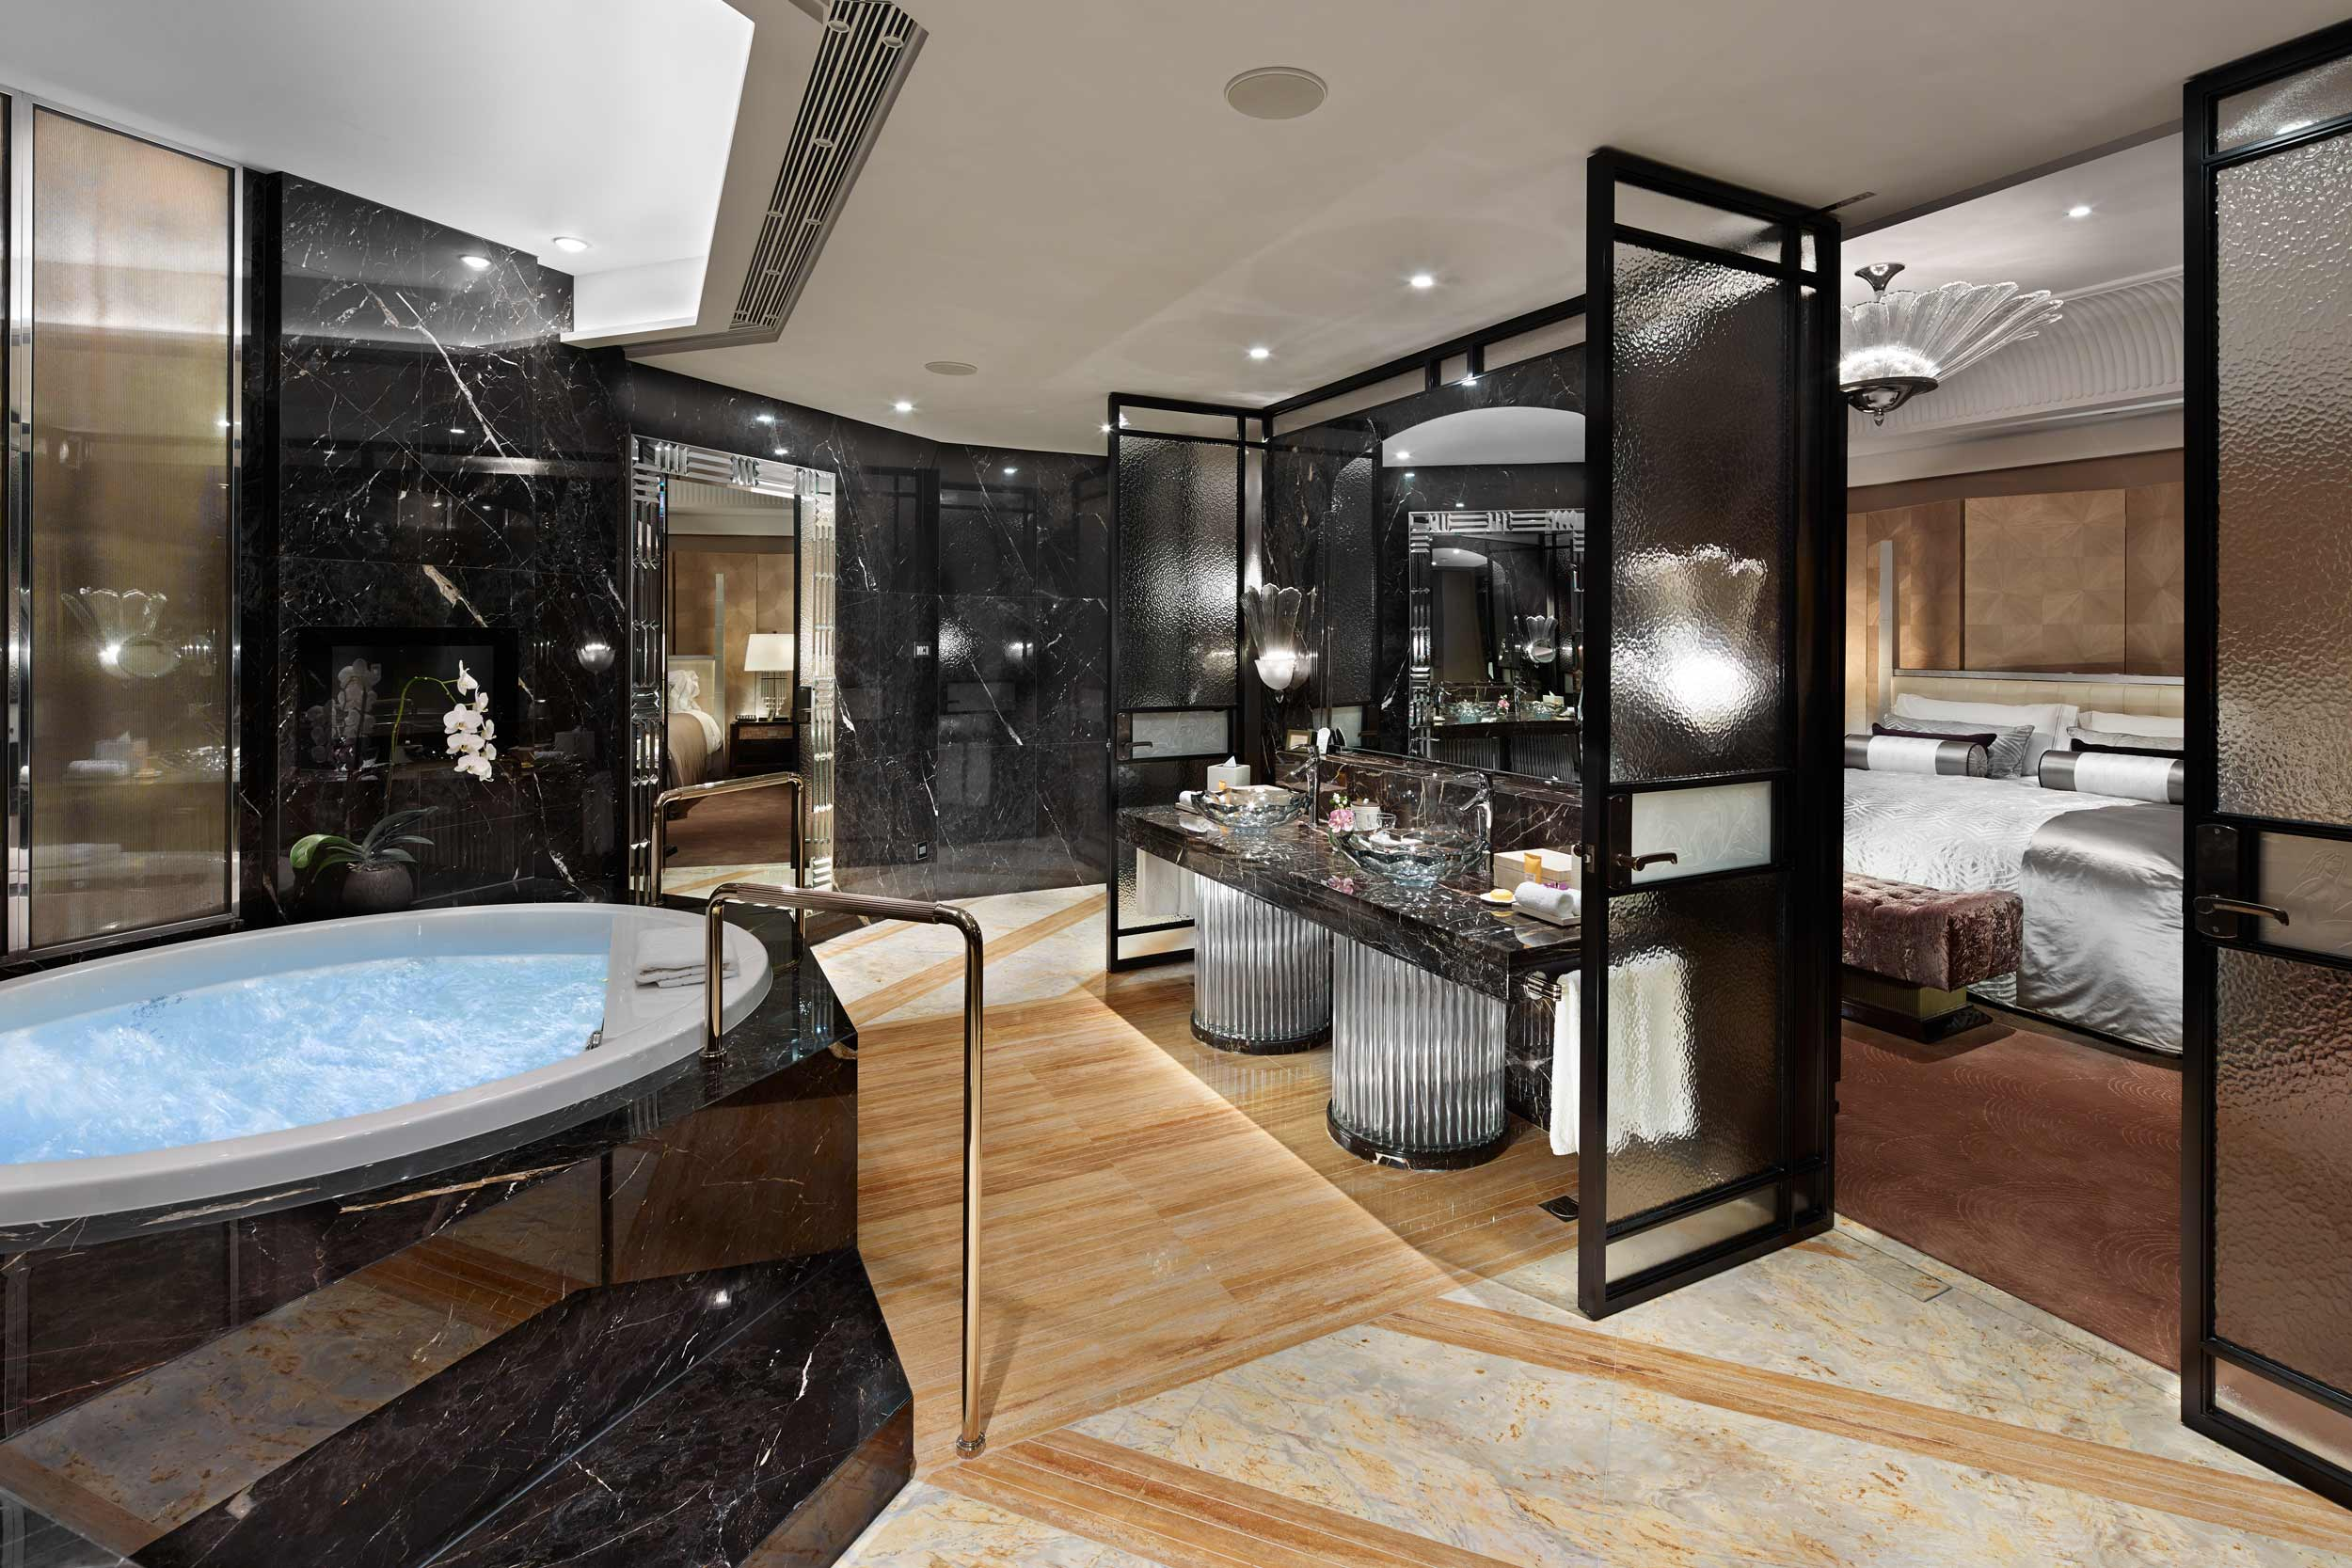 Mandarin-Oriental-Suite-bathroom